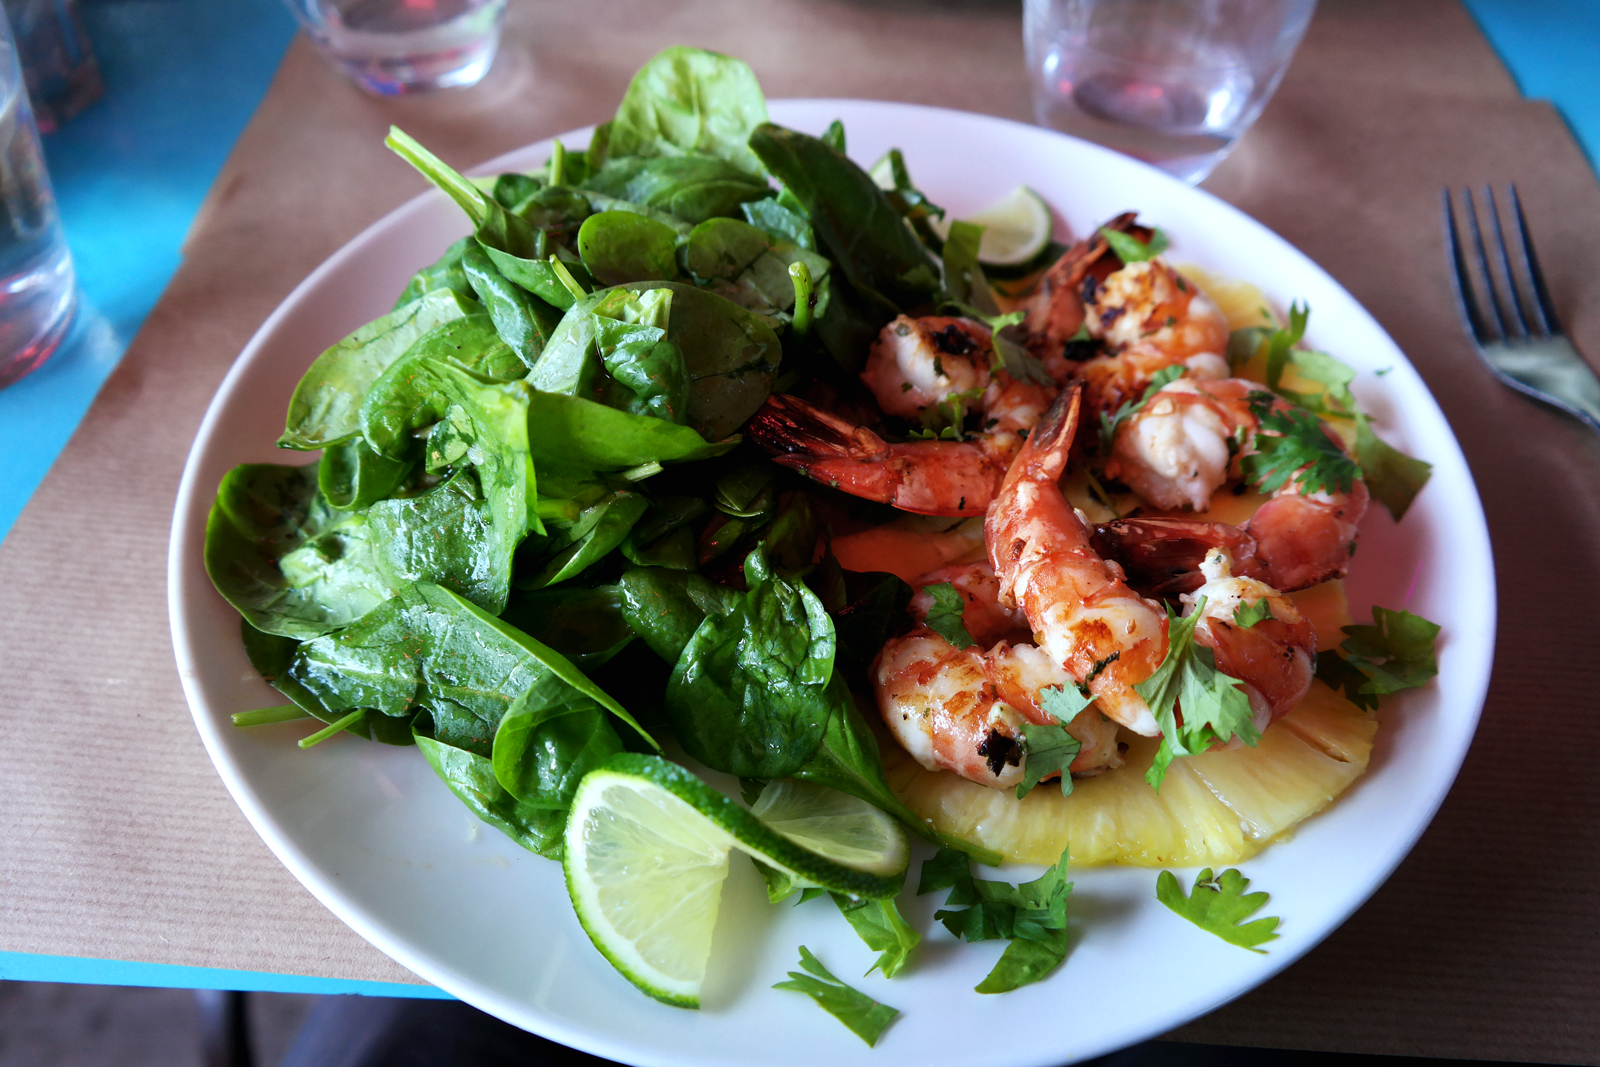 Shrimps BBQ crevettes ananas citron vert salade d épinards recette Diner Bedford Wanderlust burger restaurant Cité de la Mode et du Design photo by united states of paris blog